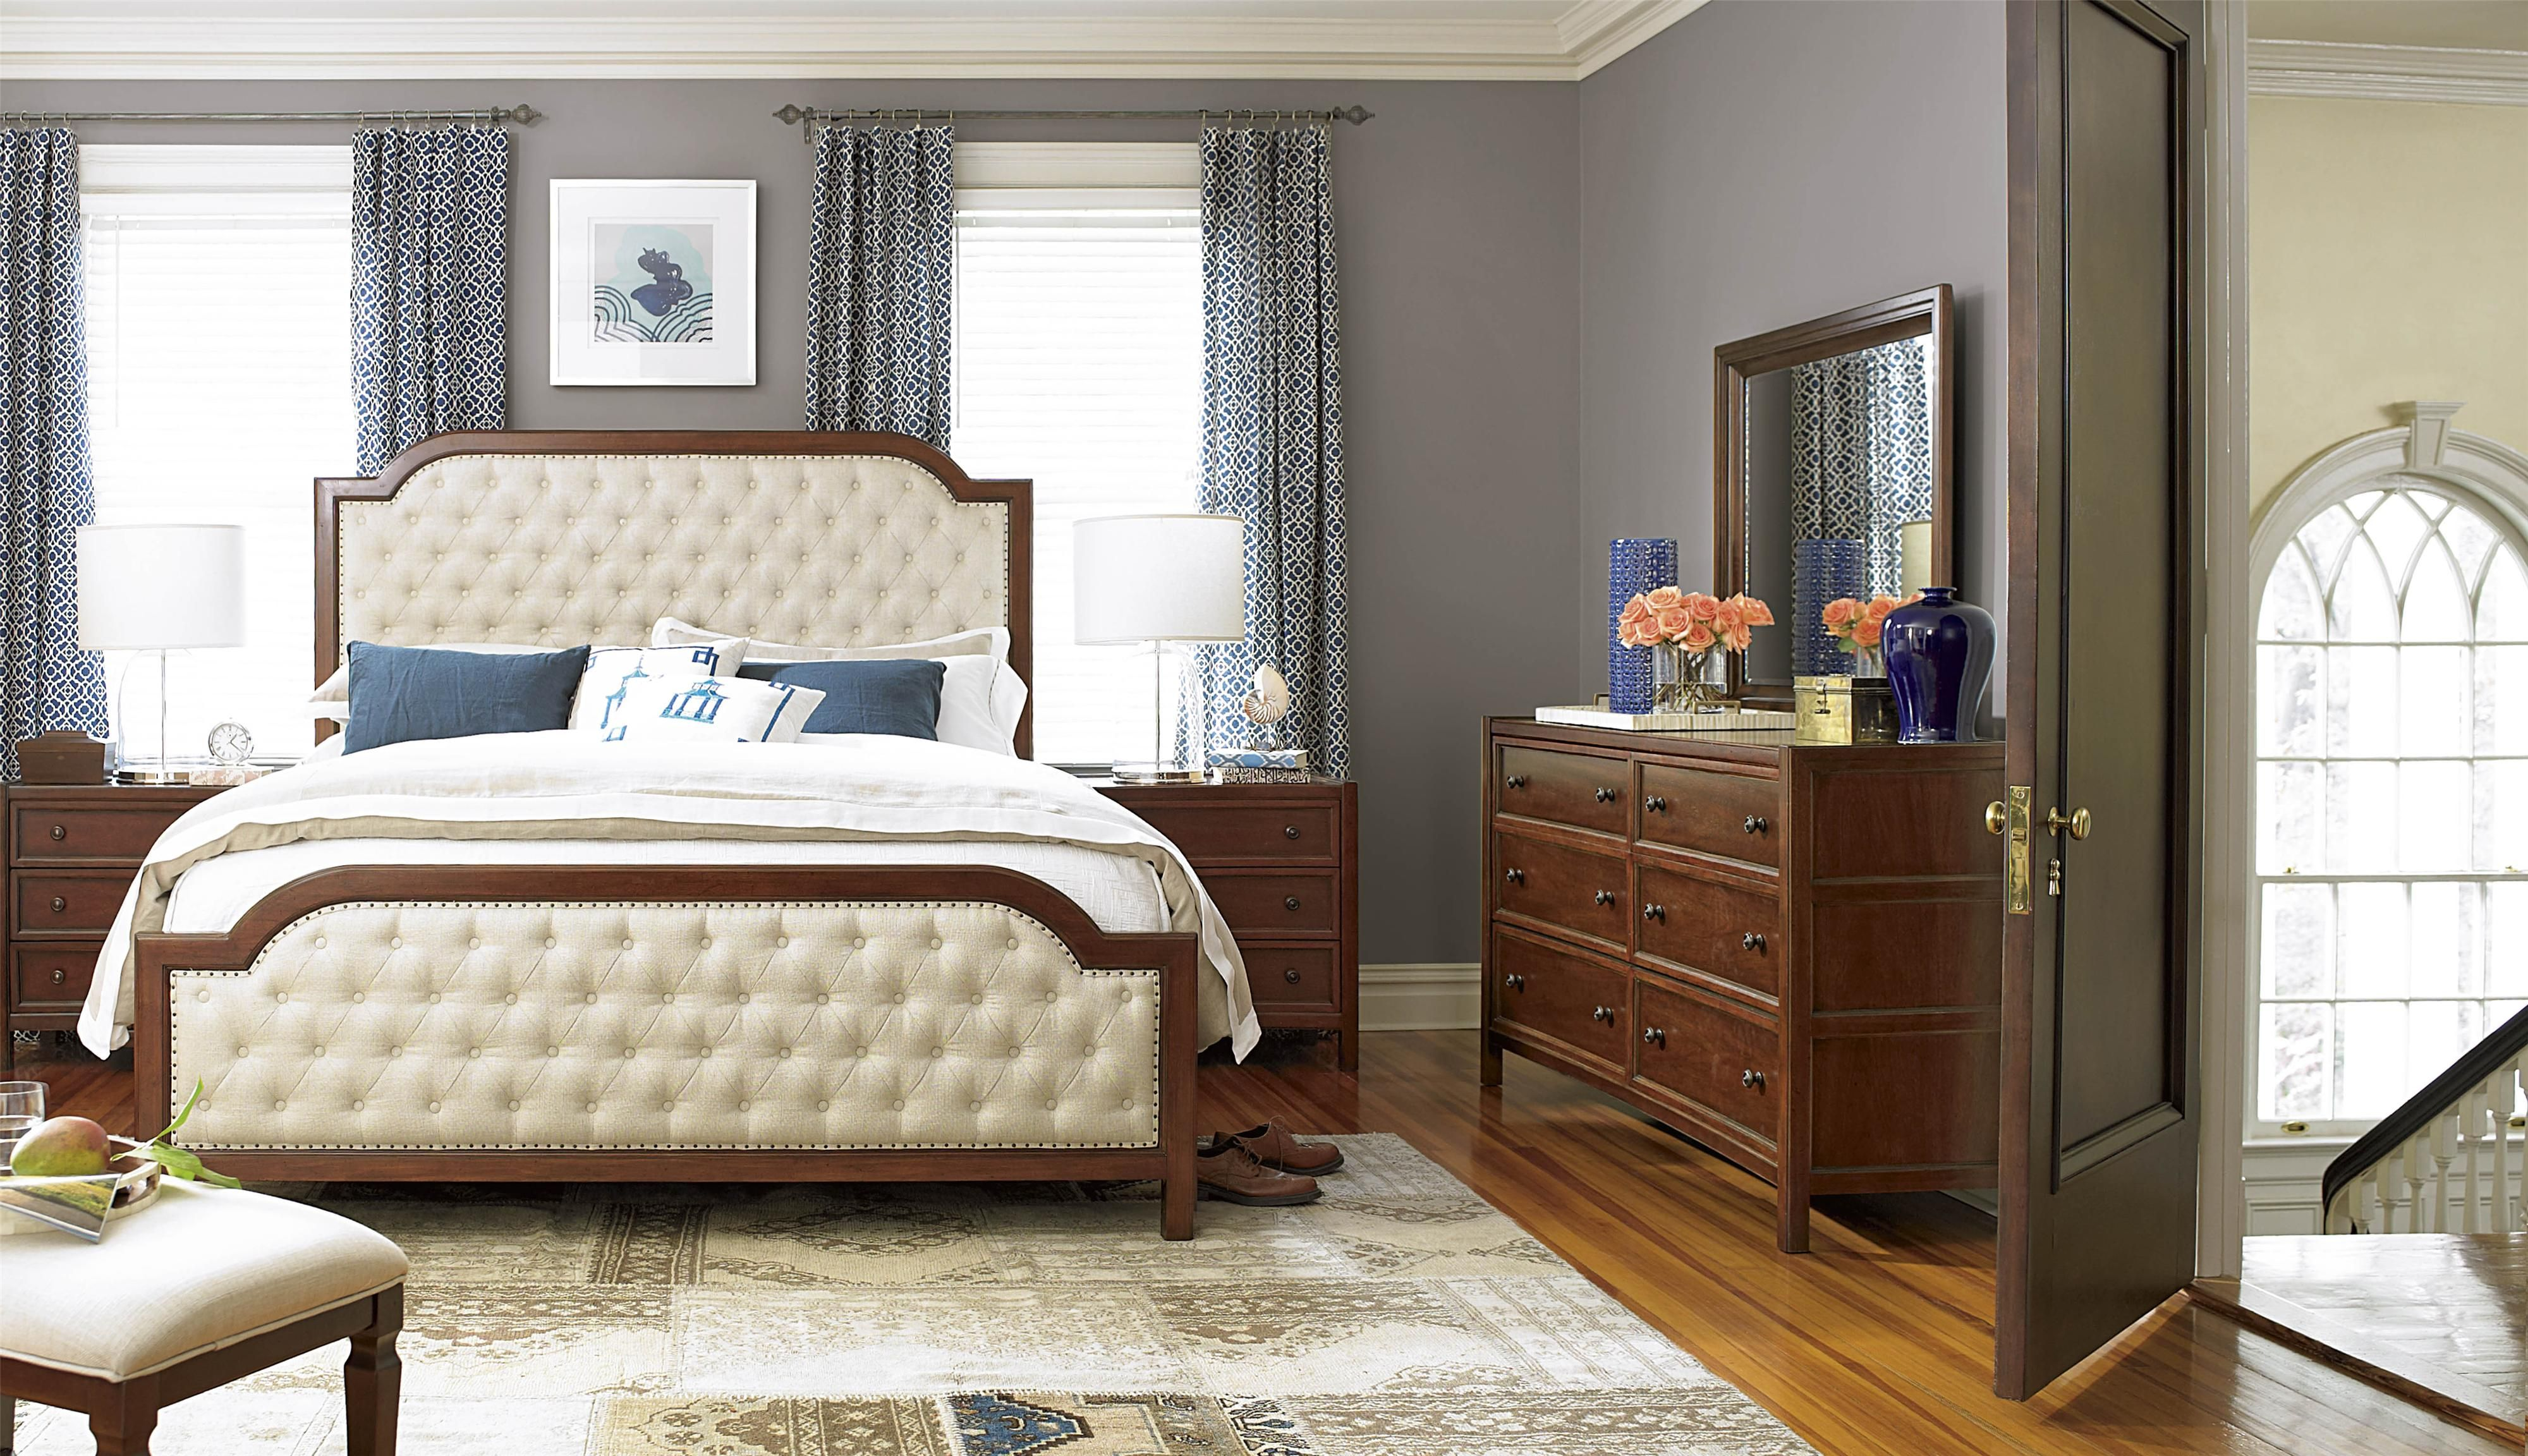 Universal Silhouette Queen Bed with Upholstered Headboard and